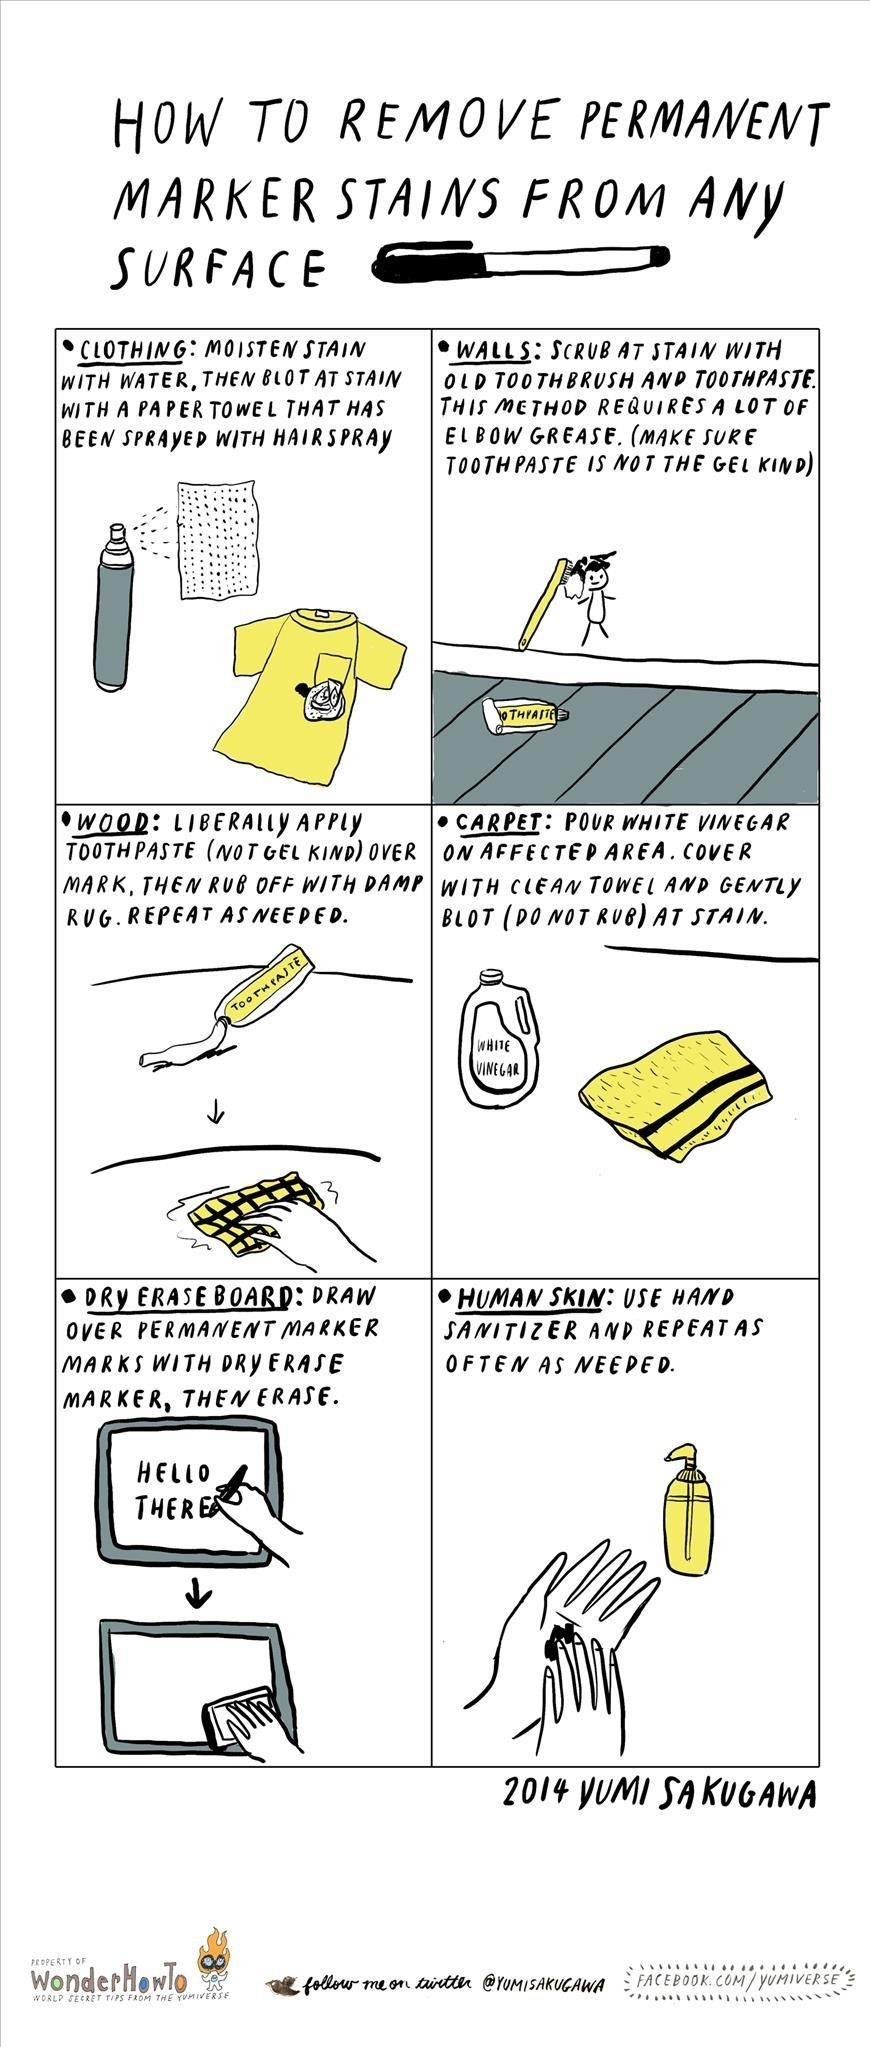 How To Remove Permanent Marker Stains From Any Surface